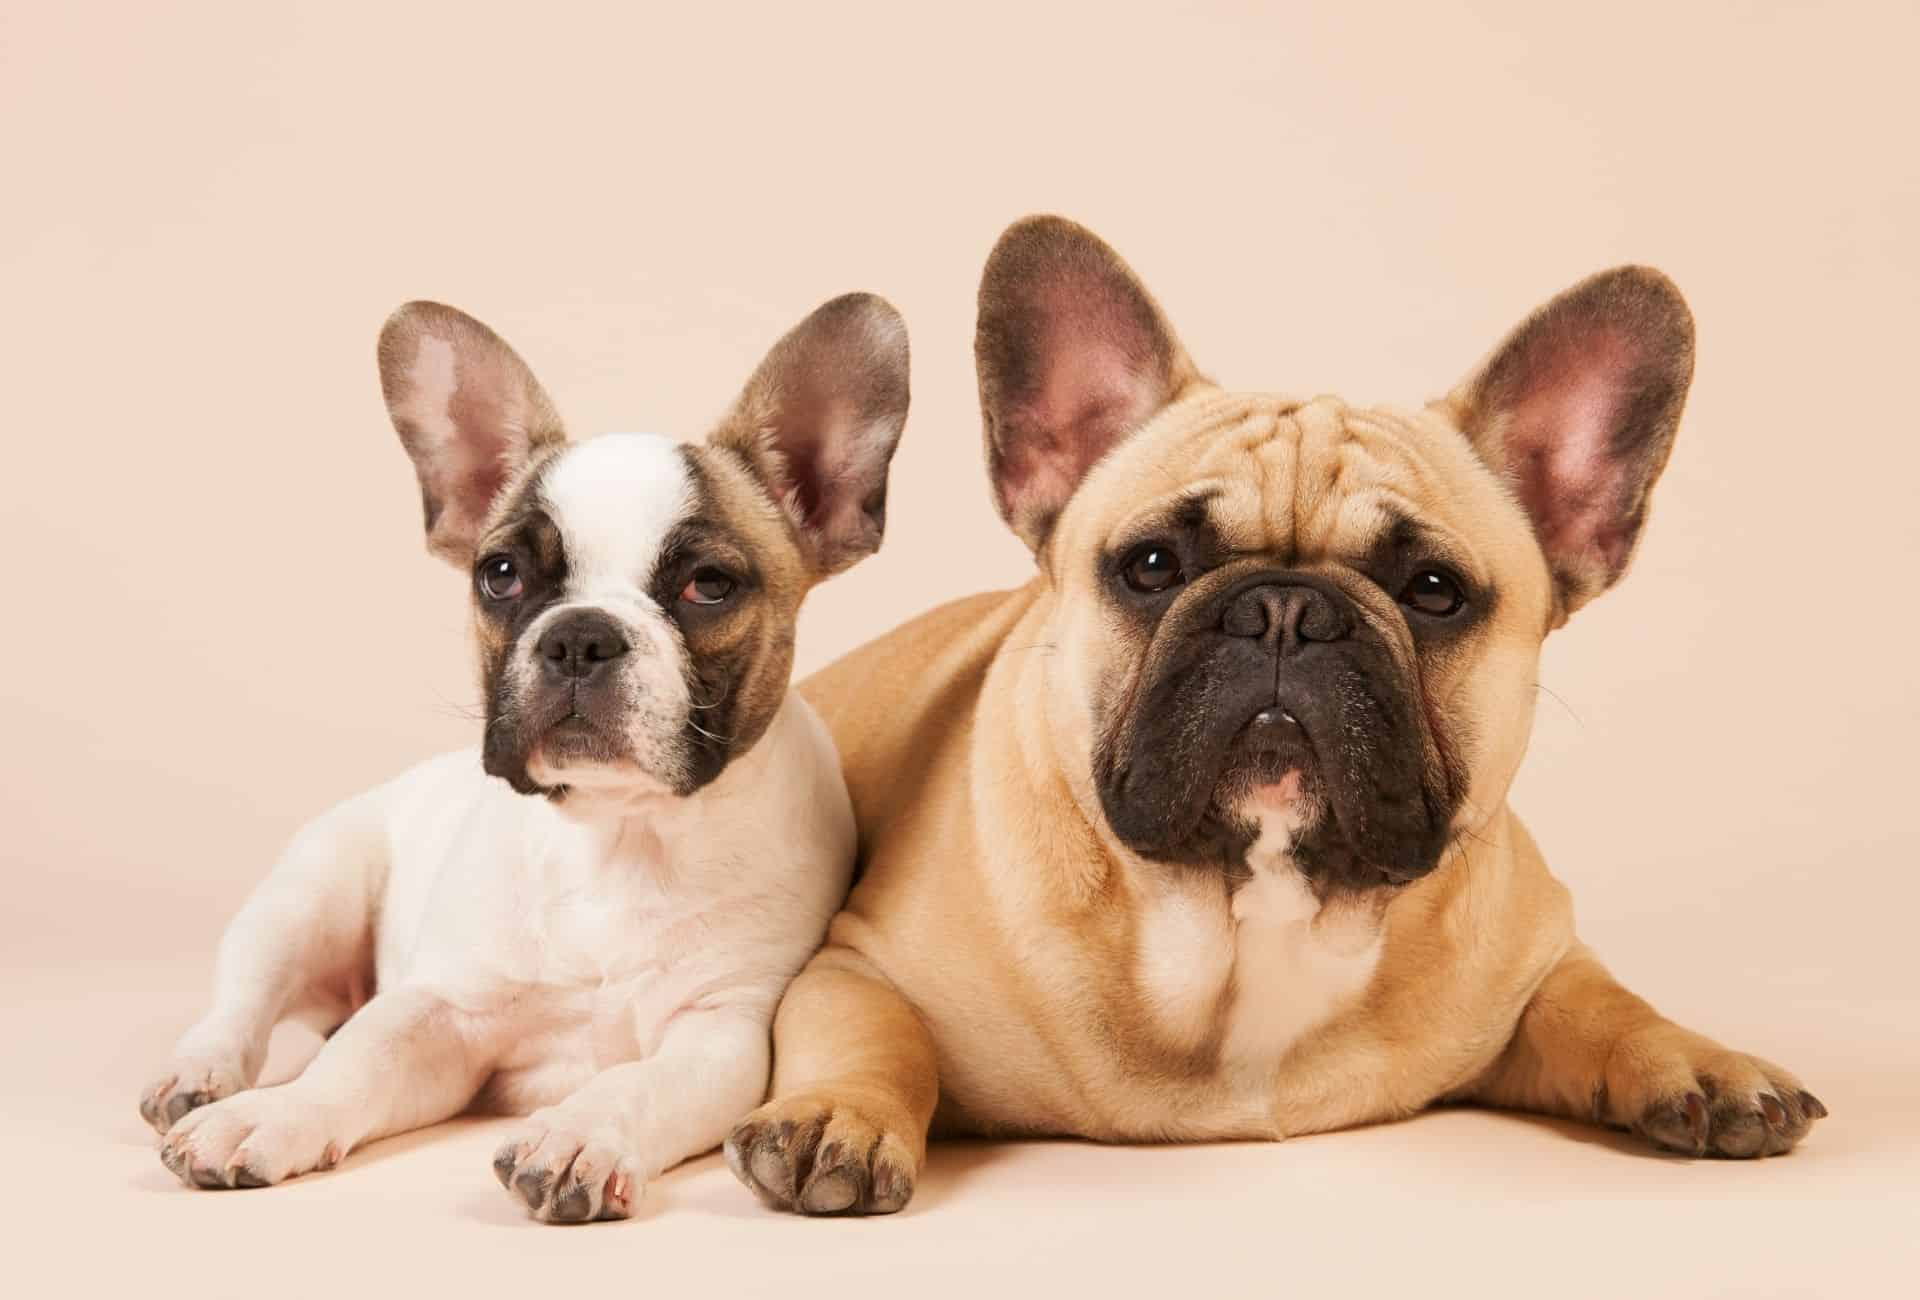 French Bulldog puppy is lying next to an adult French Bulldog.